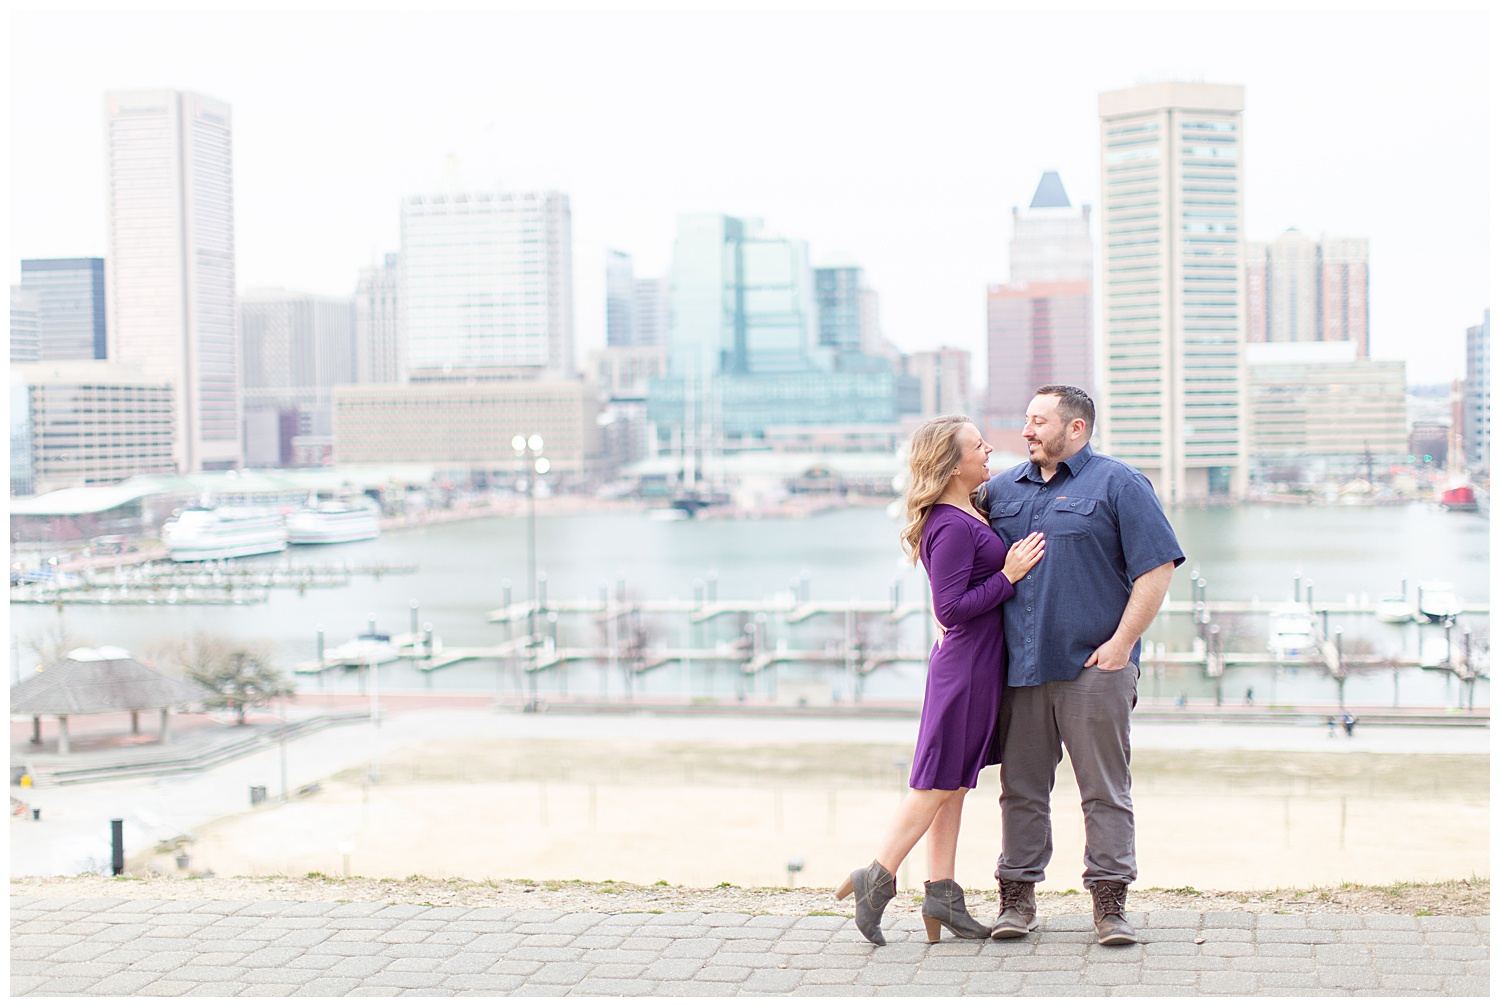 emily-belson-photography-baltimore-engagement-02.jpg